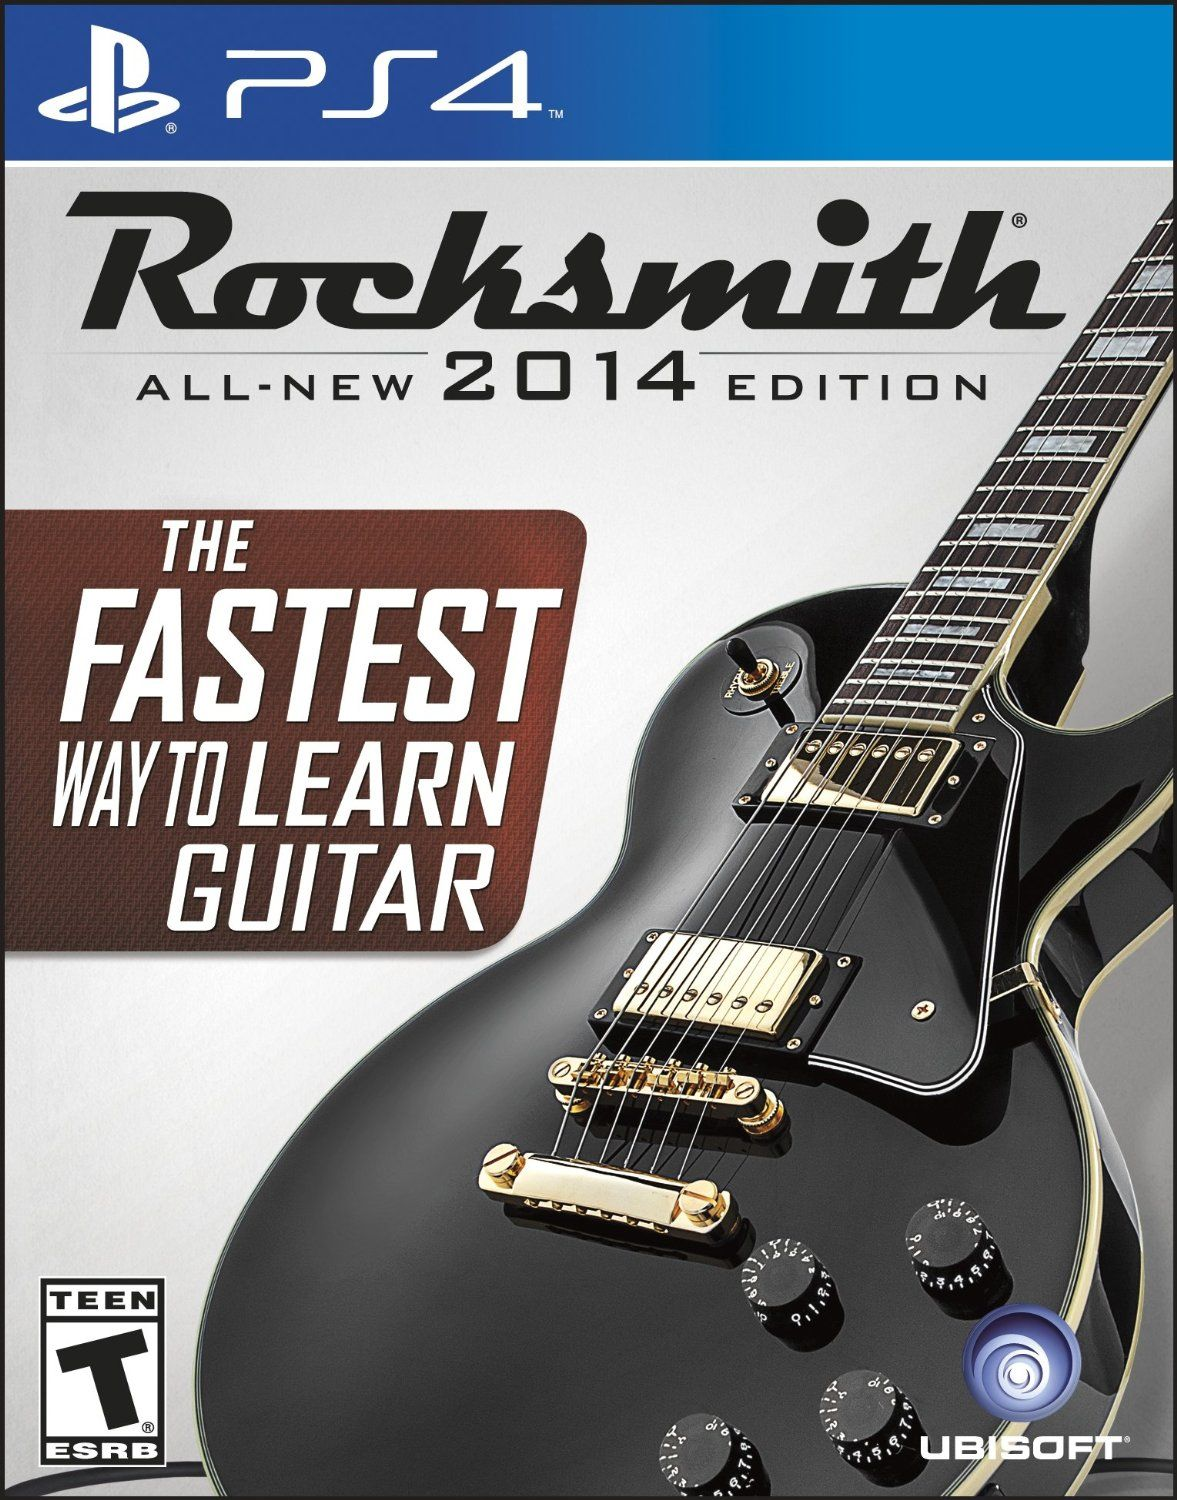 Reset Thumbnail Cache In Windows Rocksmith 2014 Edition (ps4) $40 + Free  Shipping